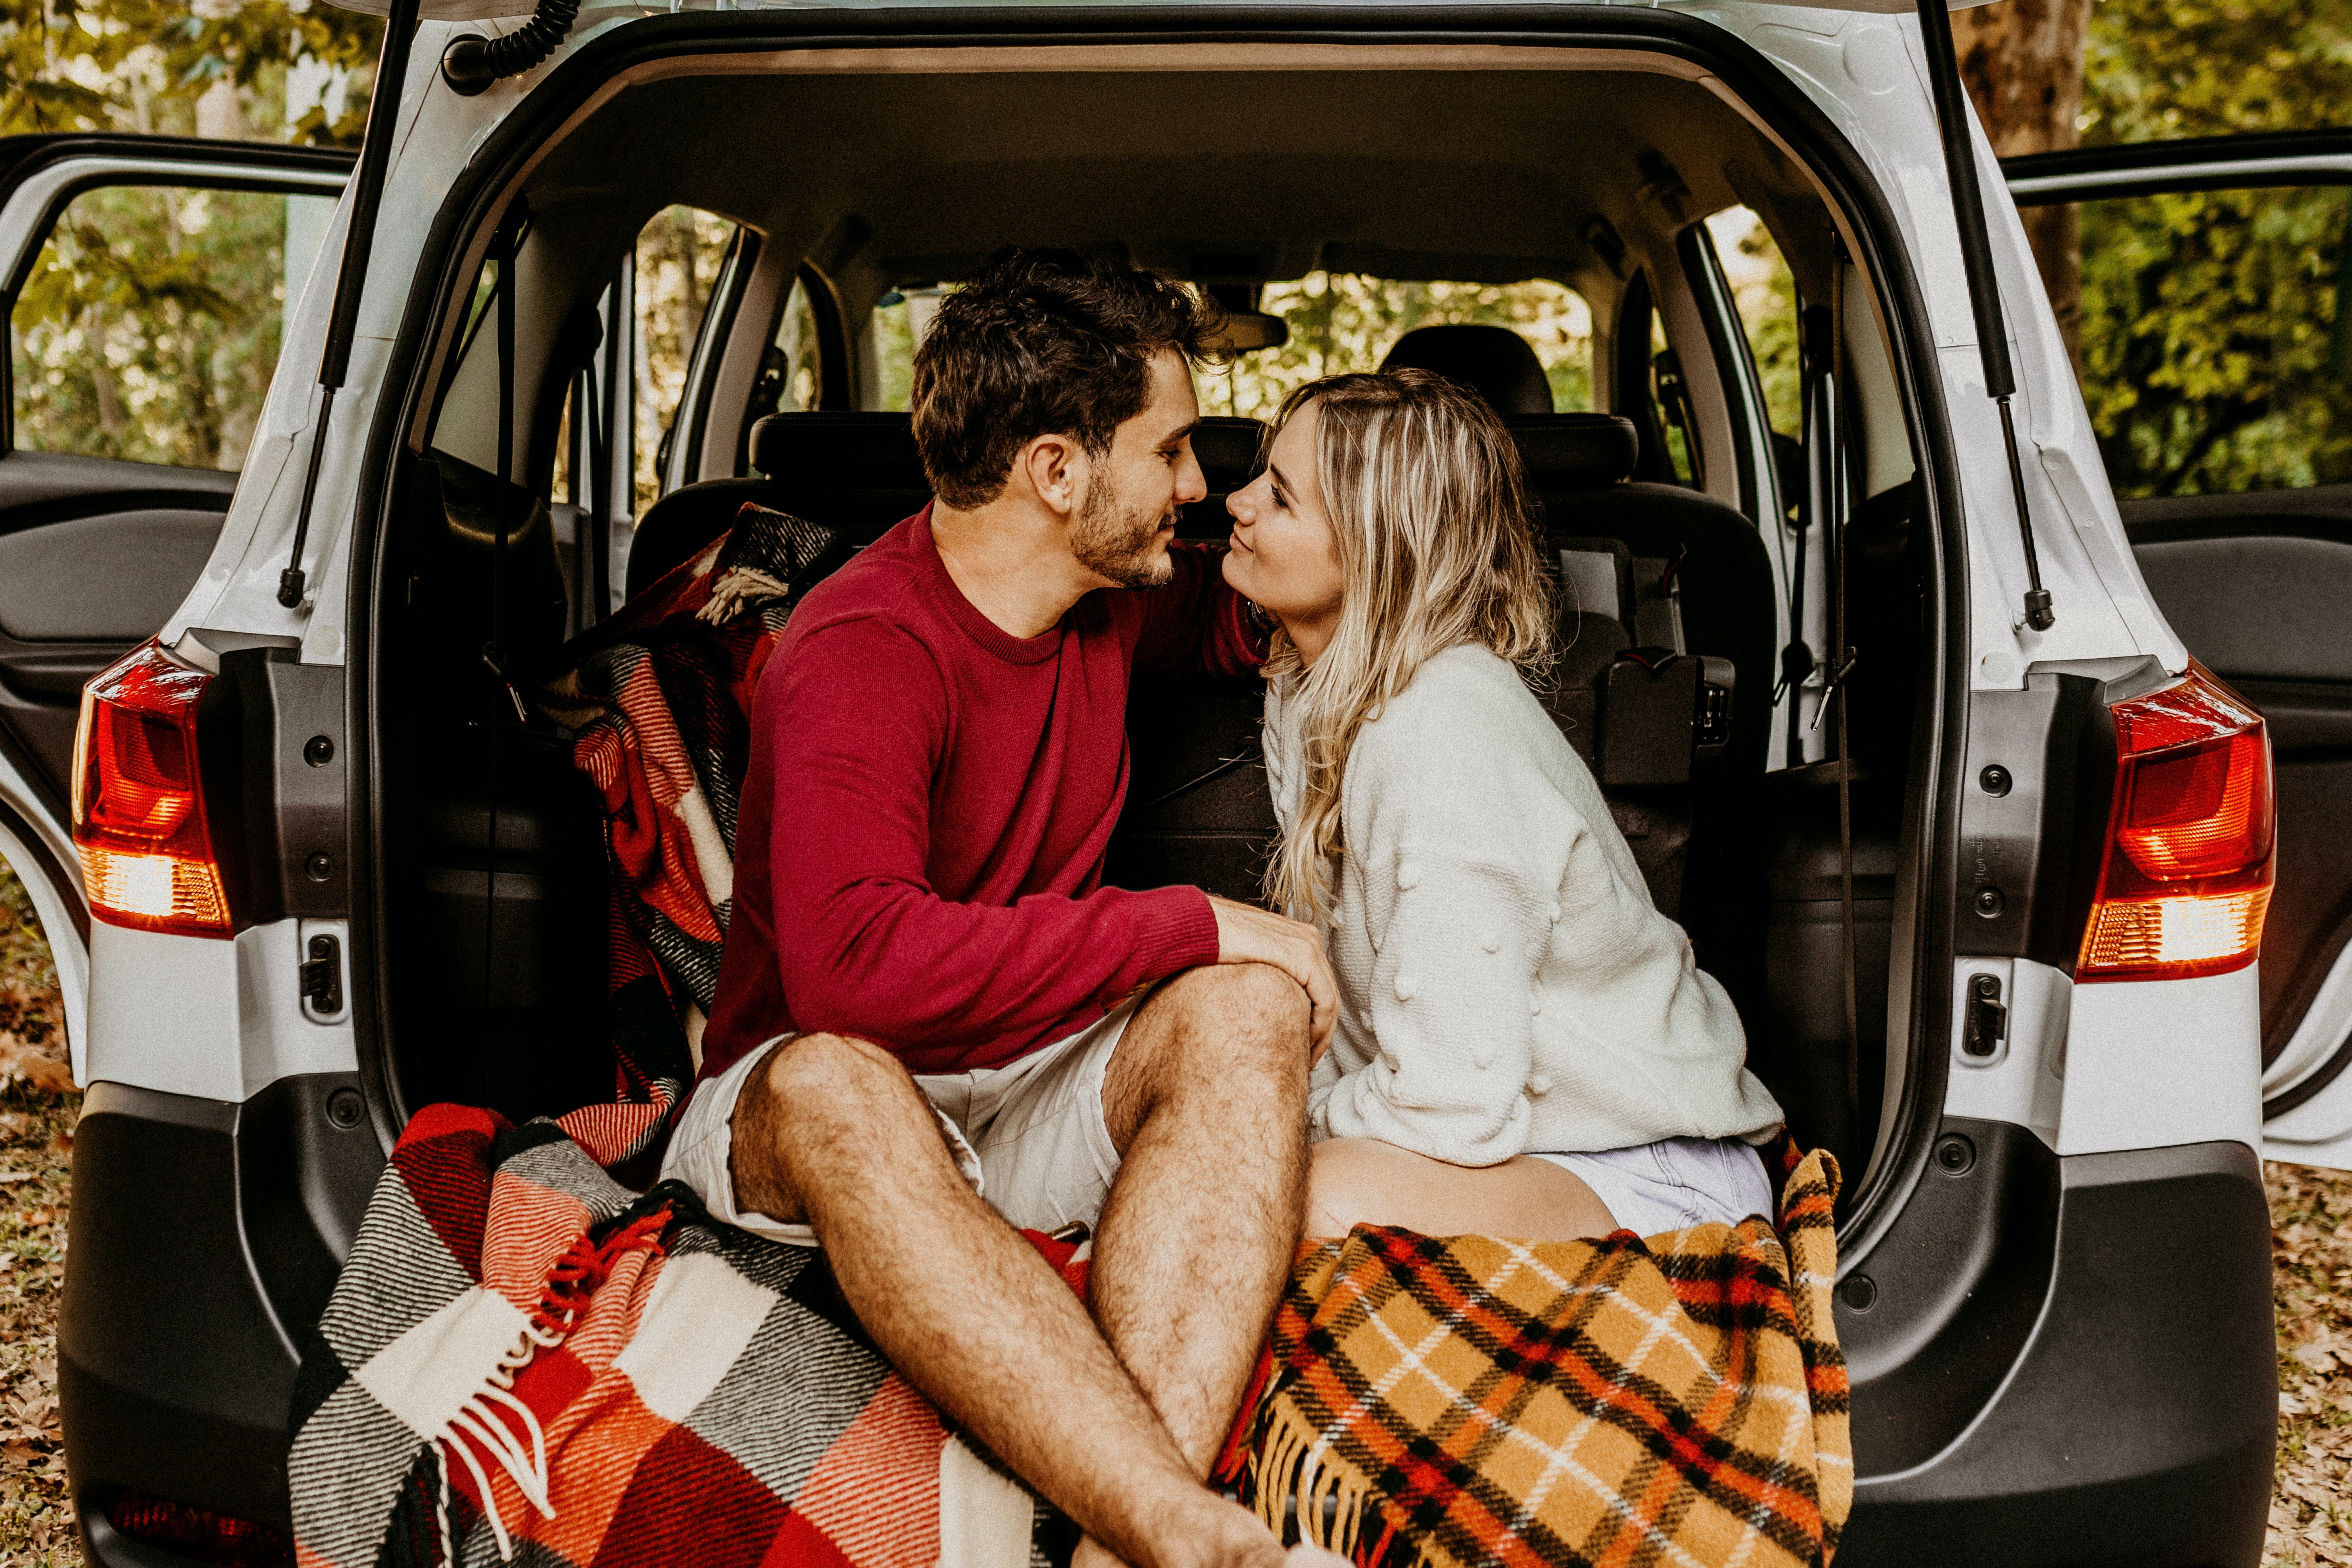 girl it should be me  driving to your house knocking on your door kissing you on your mouth holding on your hand dancing in the dark coz I was the only one who loved you from the start #love stories